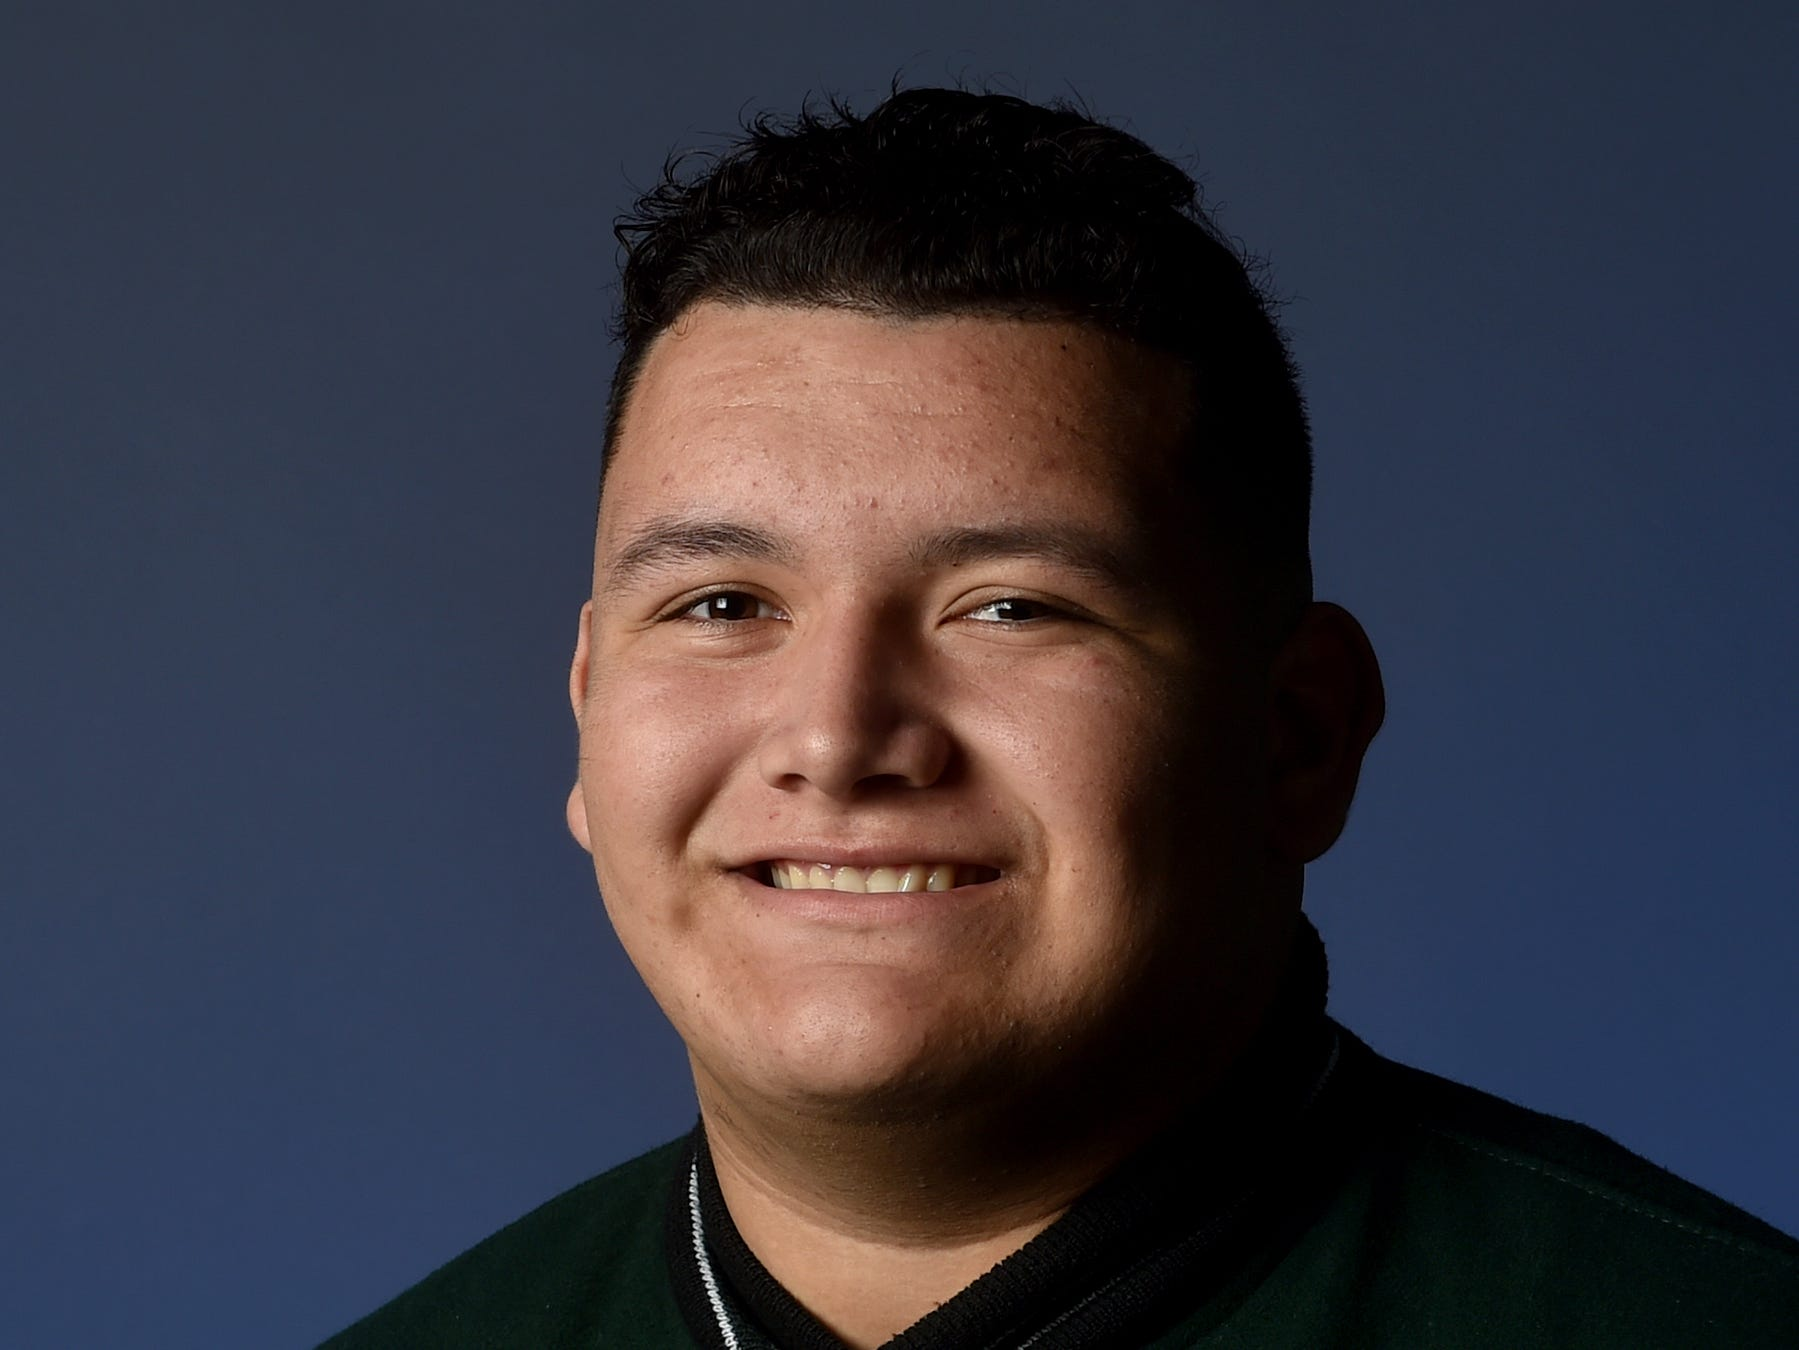 ARMANDO SIFUENTES, Pacifica, Offensive line: No matter which side of the football he played, the 6-foot-3, 300-pounder was a fearsome force. On offense, the left tackle helped power a unit that averaged 293.3 rushing yards and 165.3 passing. On defense, the defensive tackle was the anchor, collecting 54 tackles, two sacks and six tackles for losses. The senior was honored as the Offensive Lineman of the Year in the Pacific League and a first-team member of the coaches all-county team. He owns a 3.5 GPA and is considering Wyoming, Southern Utah and Sacramento State for his college destination. His favorite teams are the Dallas Cowboys and Ohio State. Hiking, fishing and playing chess are his hobbies.